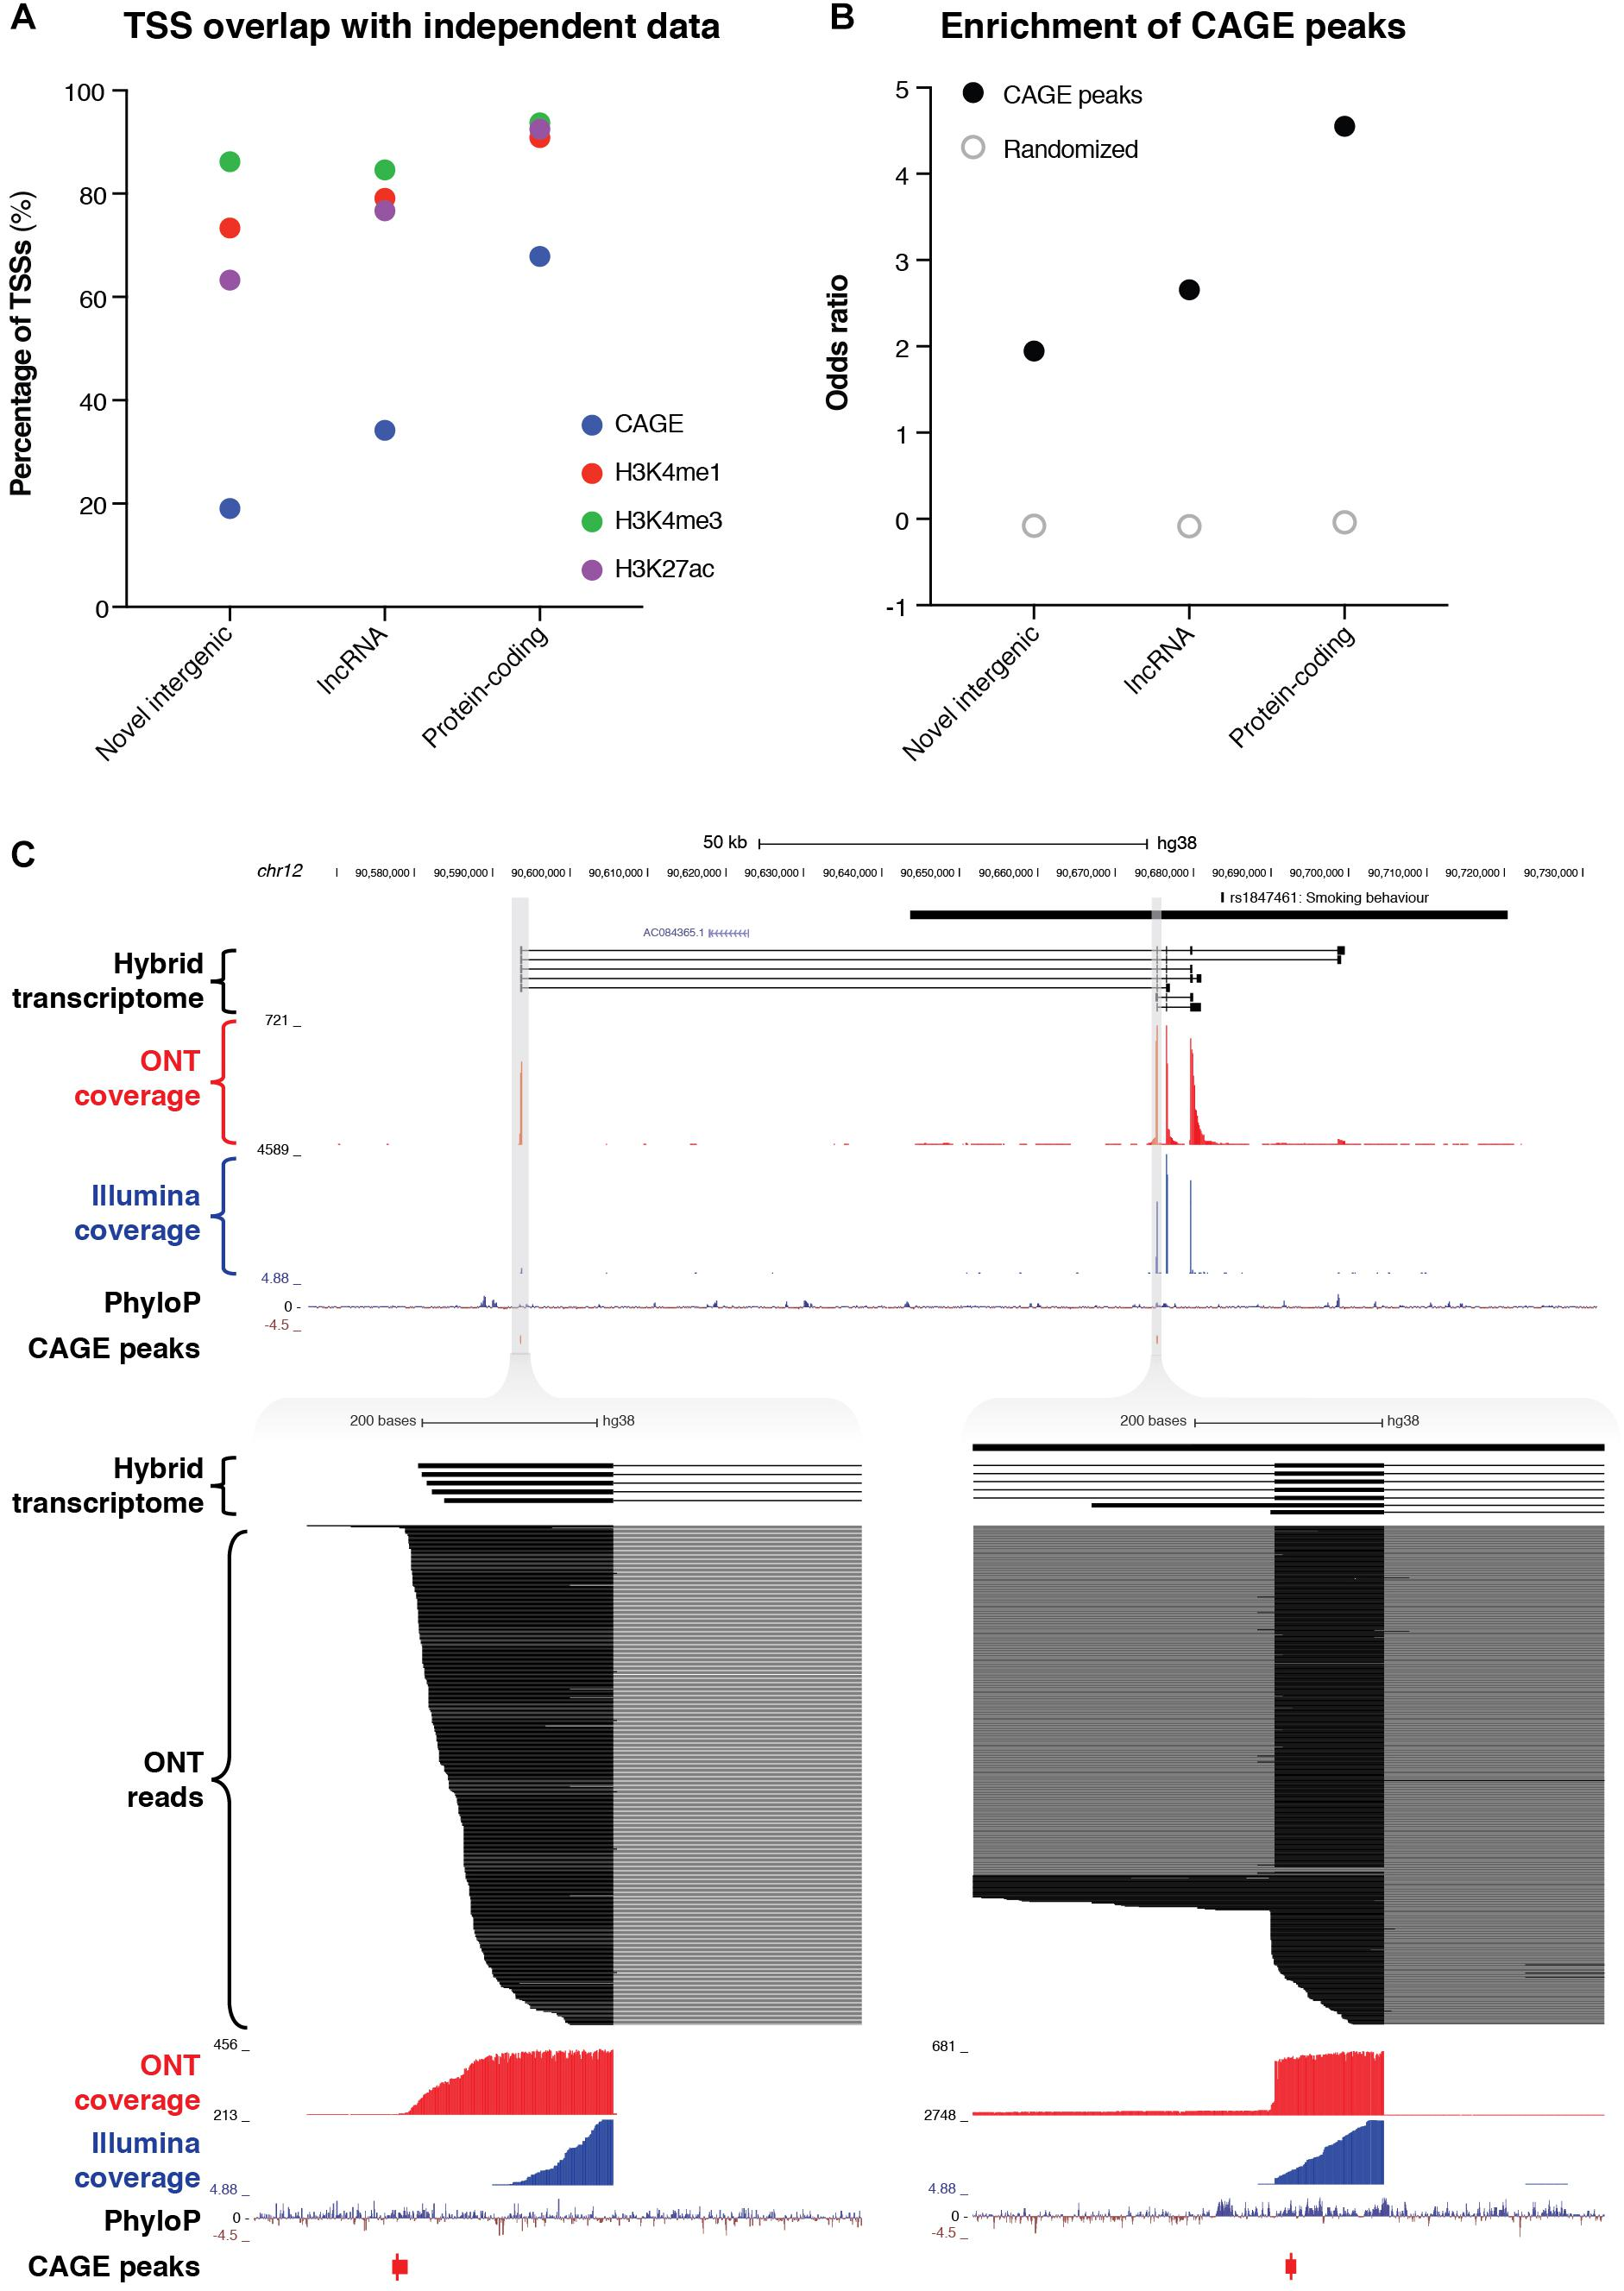 Frontiers | Targeted, High-Resolution RNA Sequencing of Non-coding